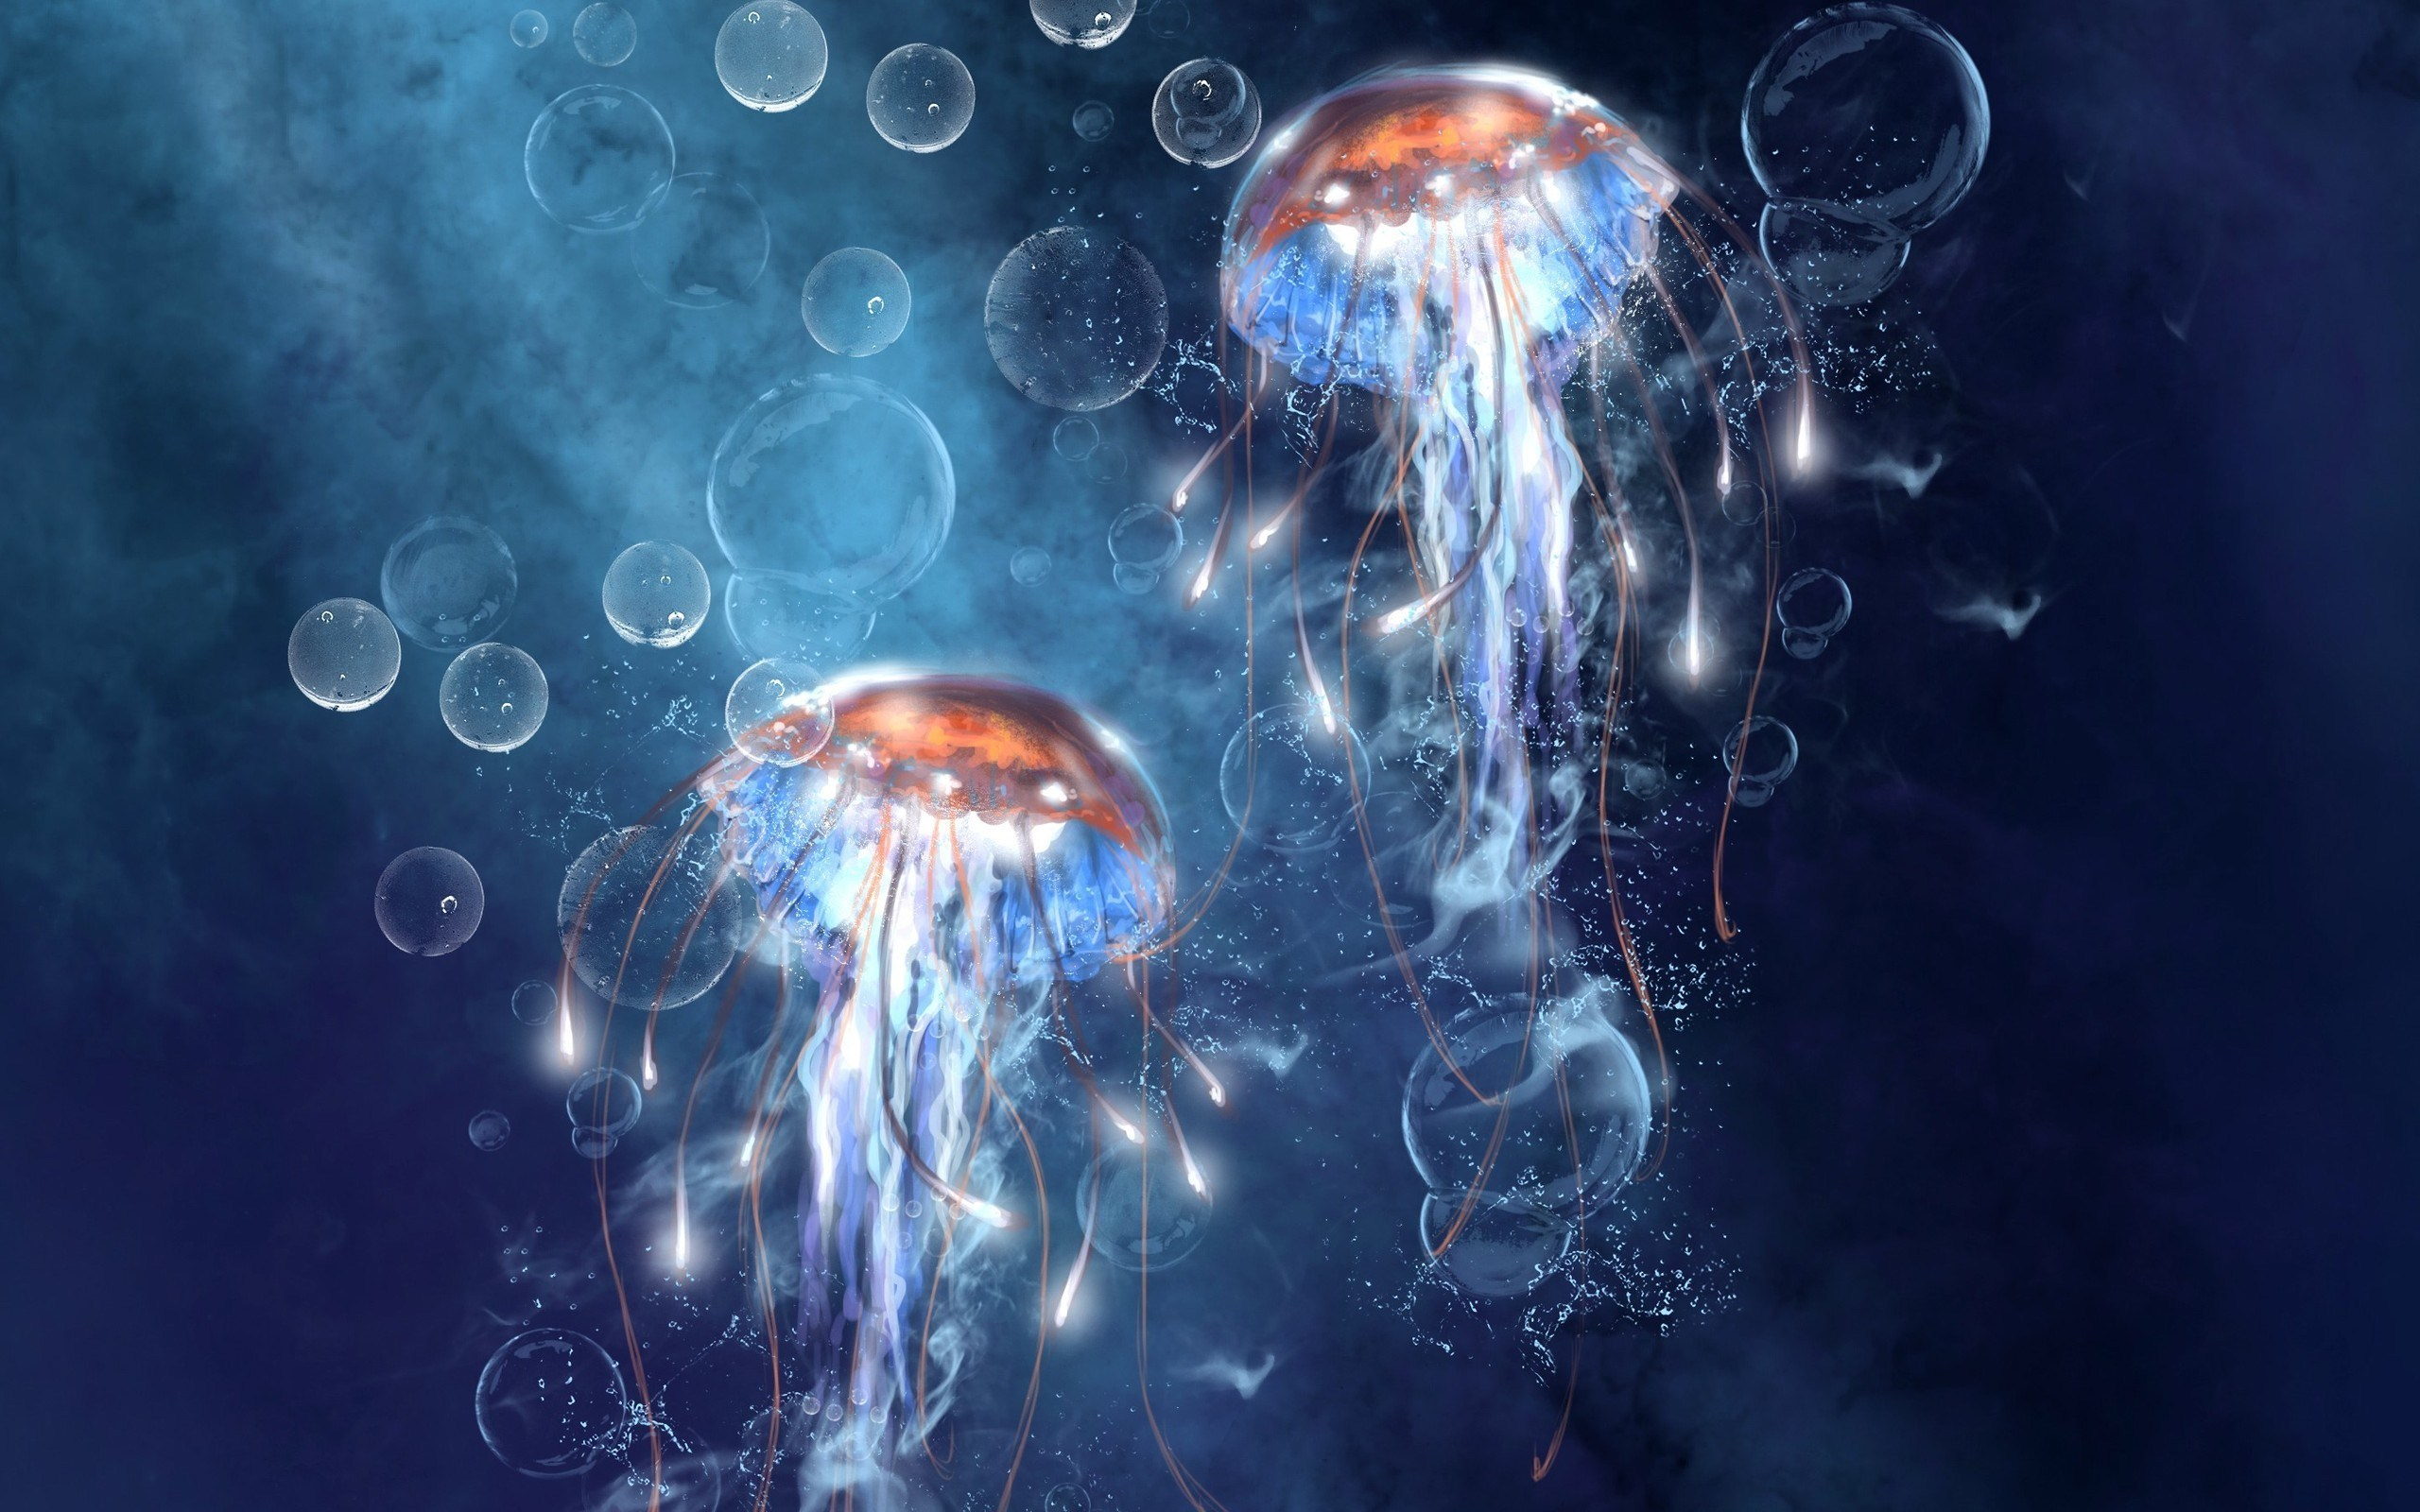 Jellyfish Ocean Bubbles Art